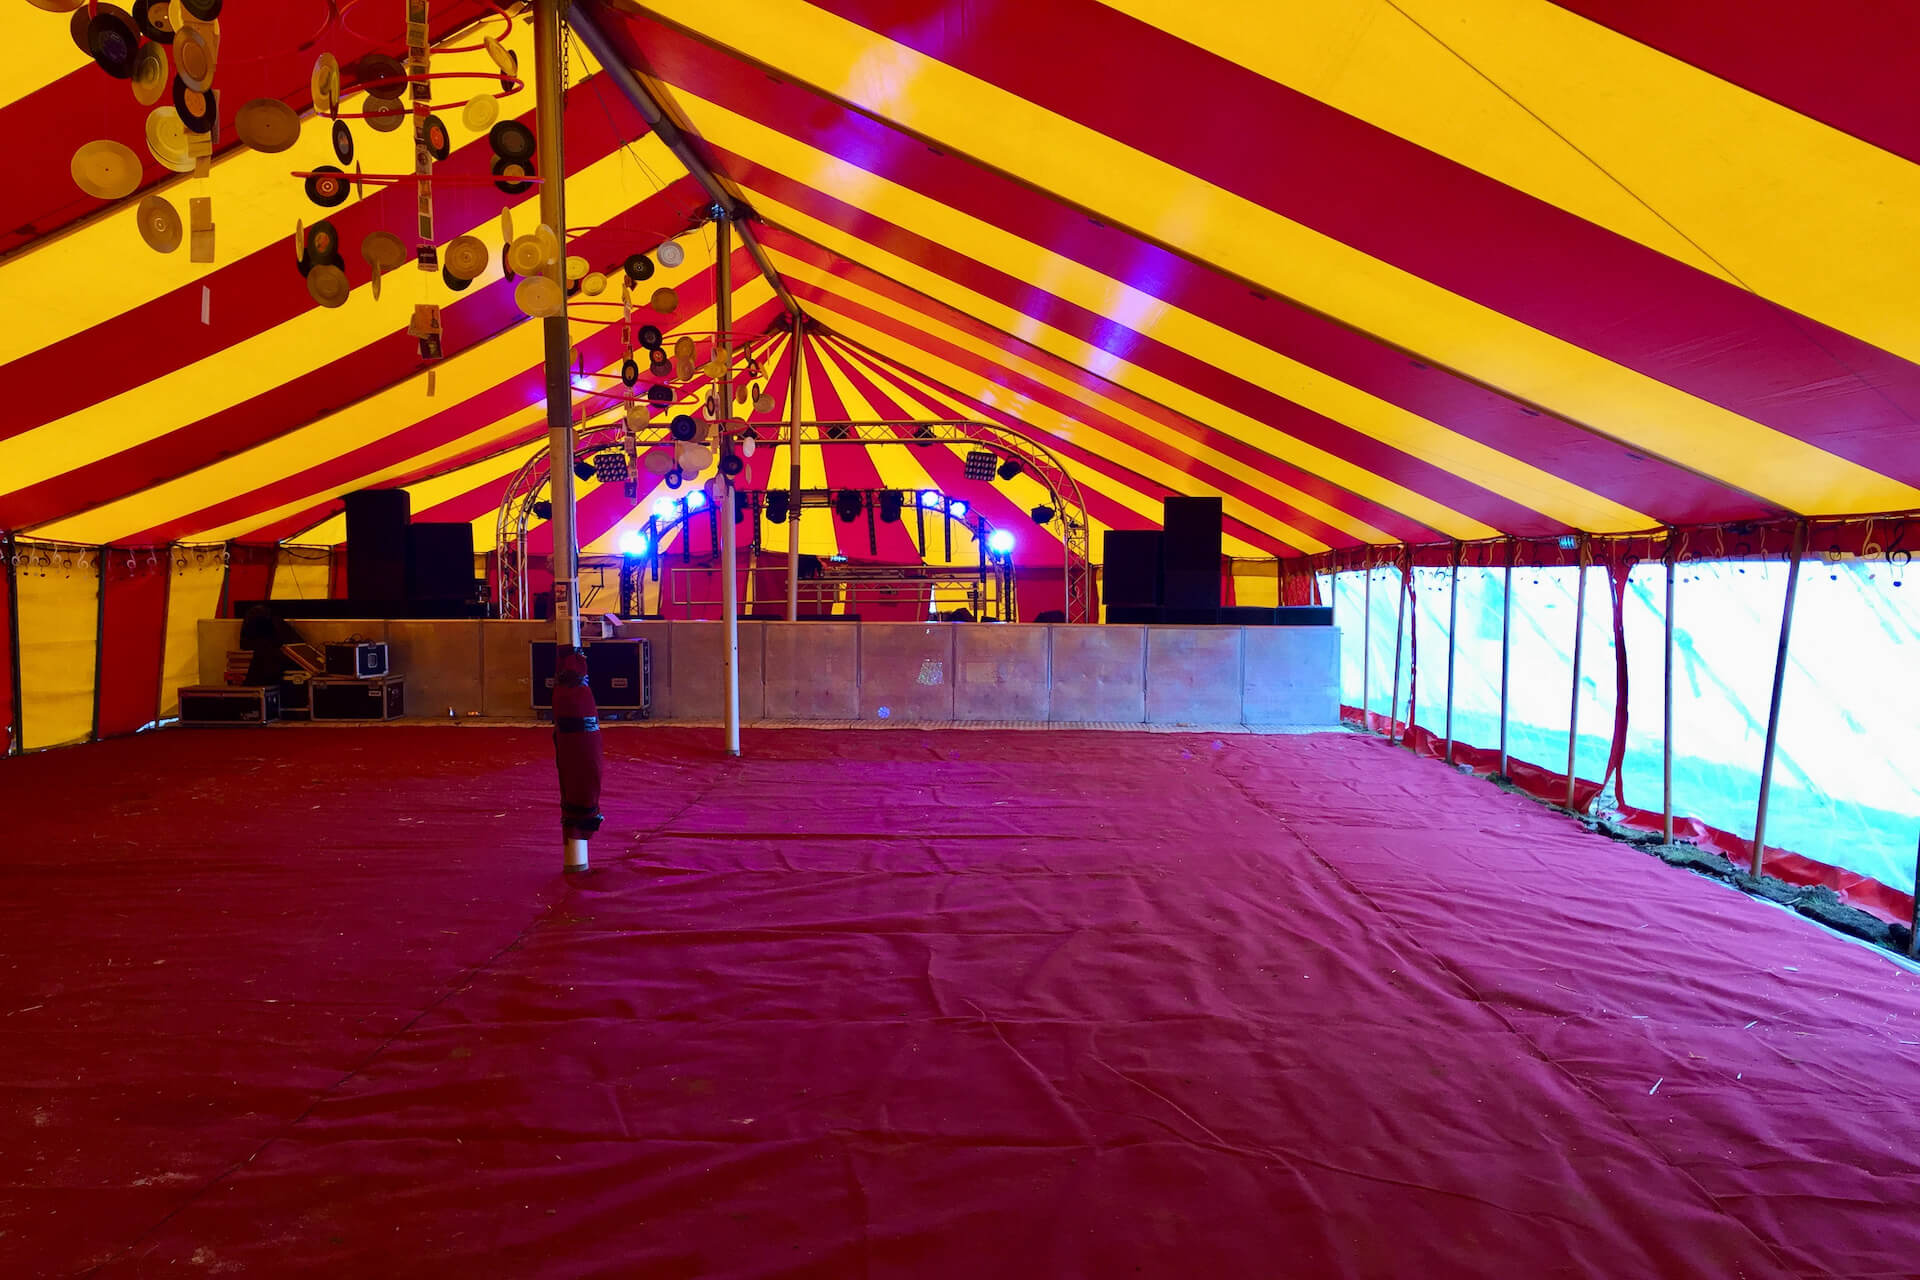 High capacity marquee stage